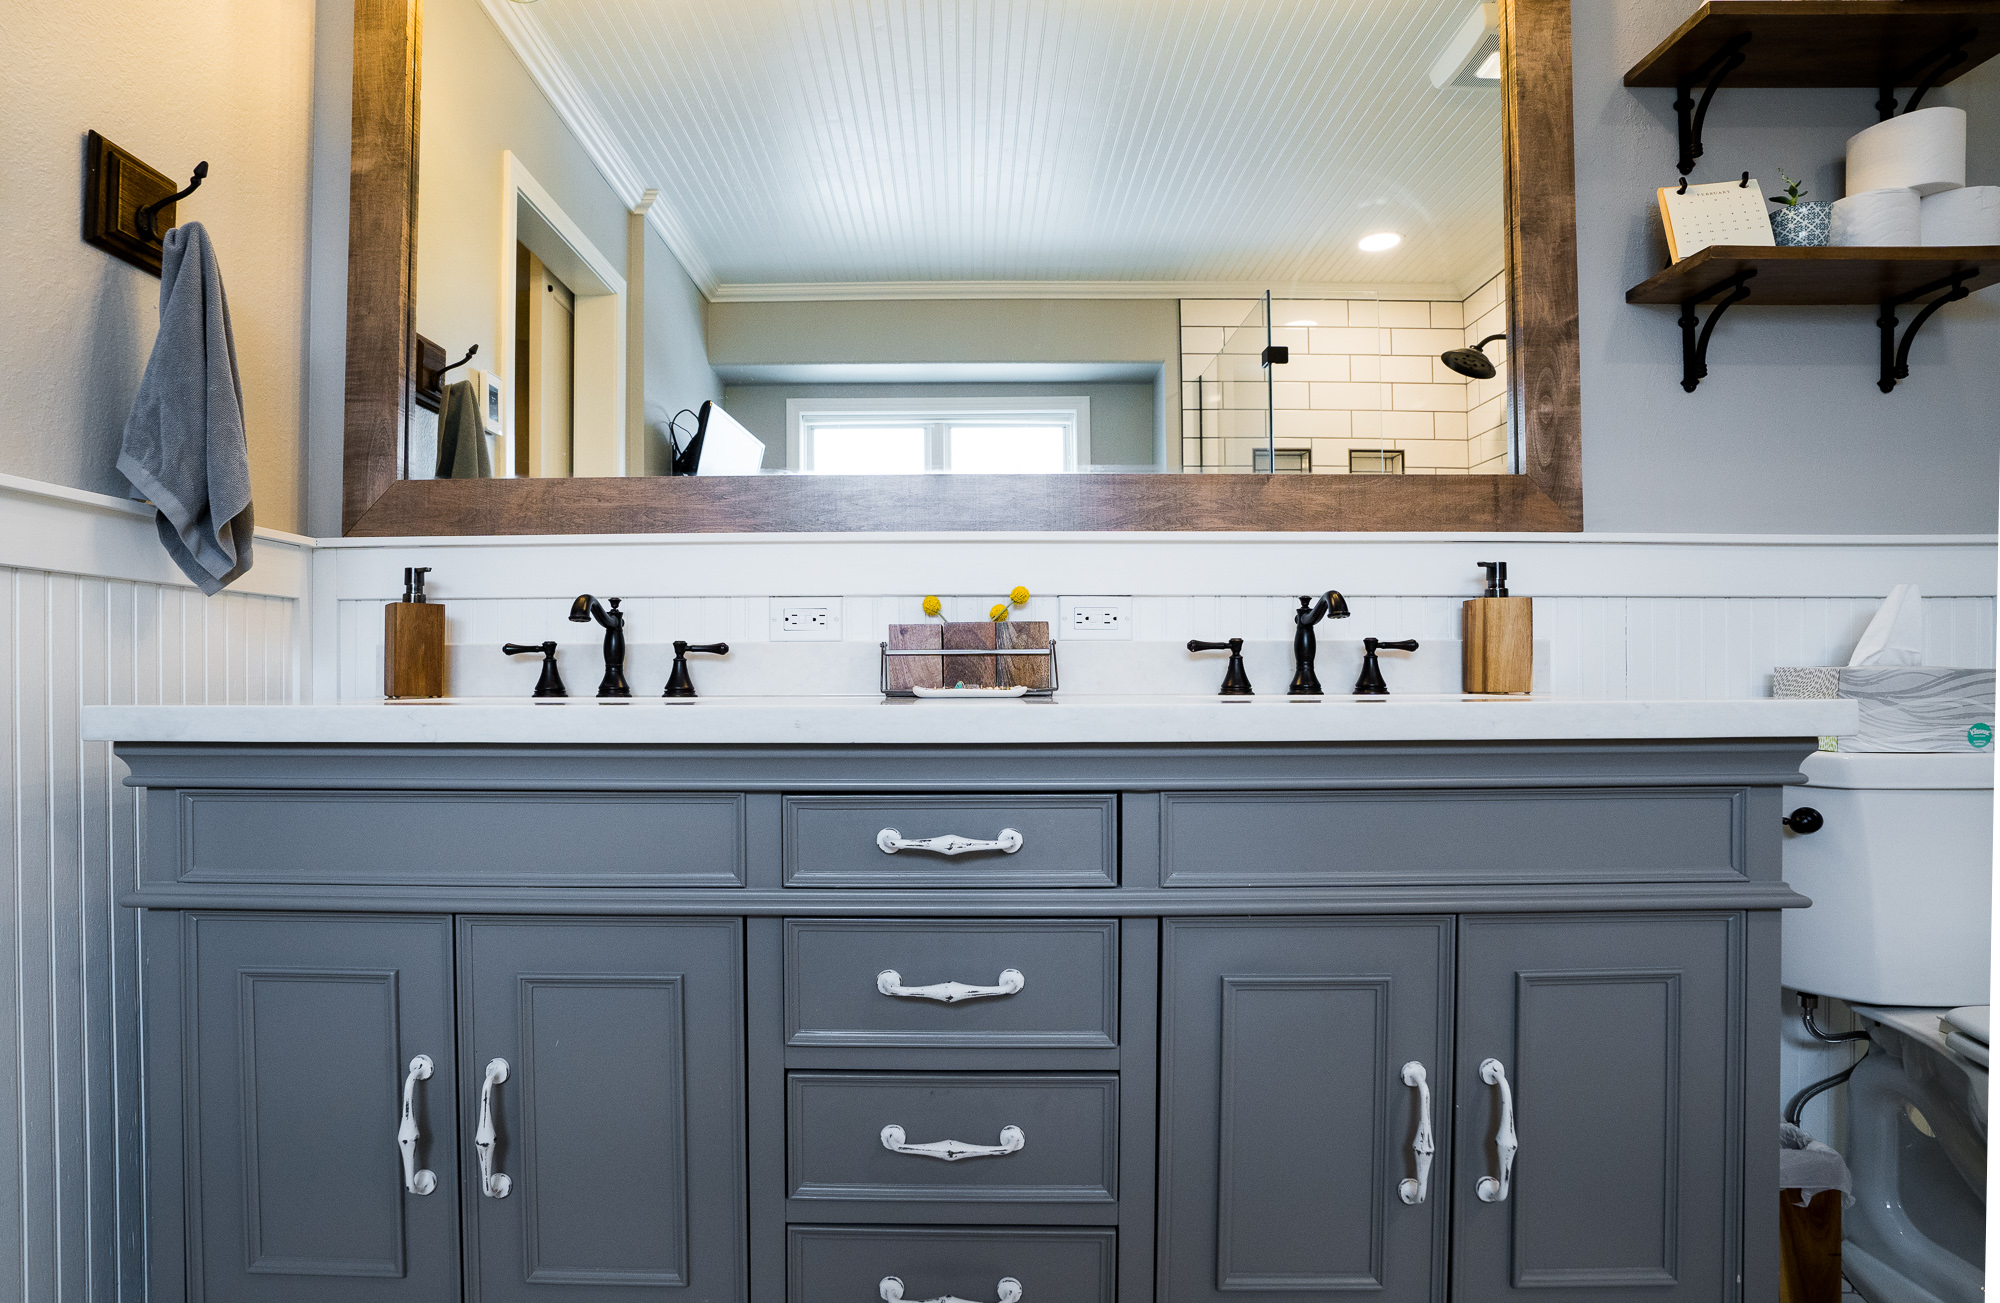 Contemporary Farmhouse - From a tight toilet and shower room to an open concept, functional design. This bathroom really came together at the end.